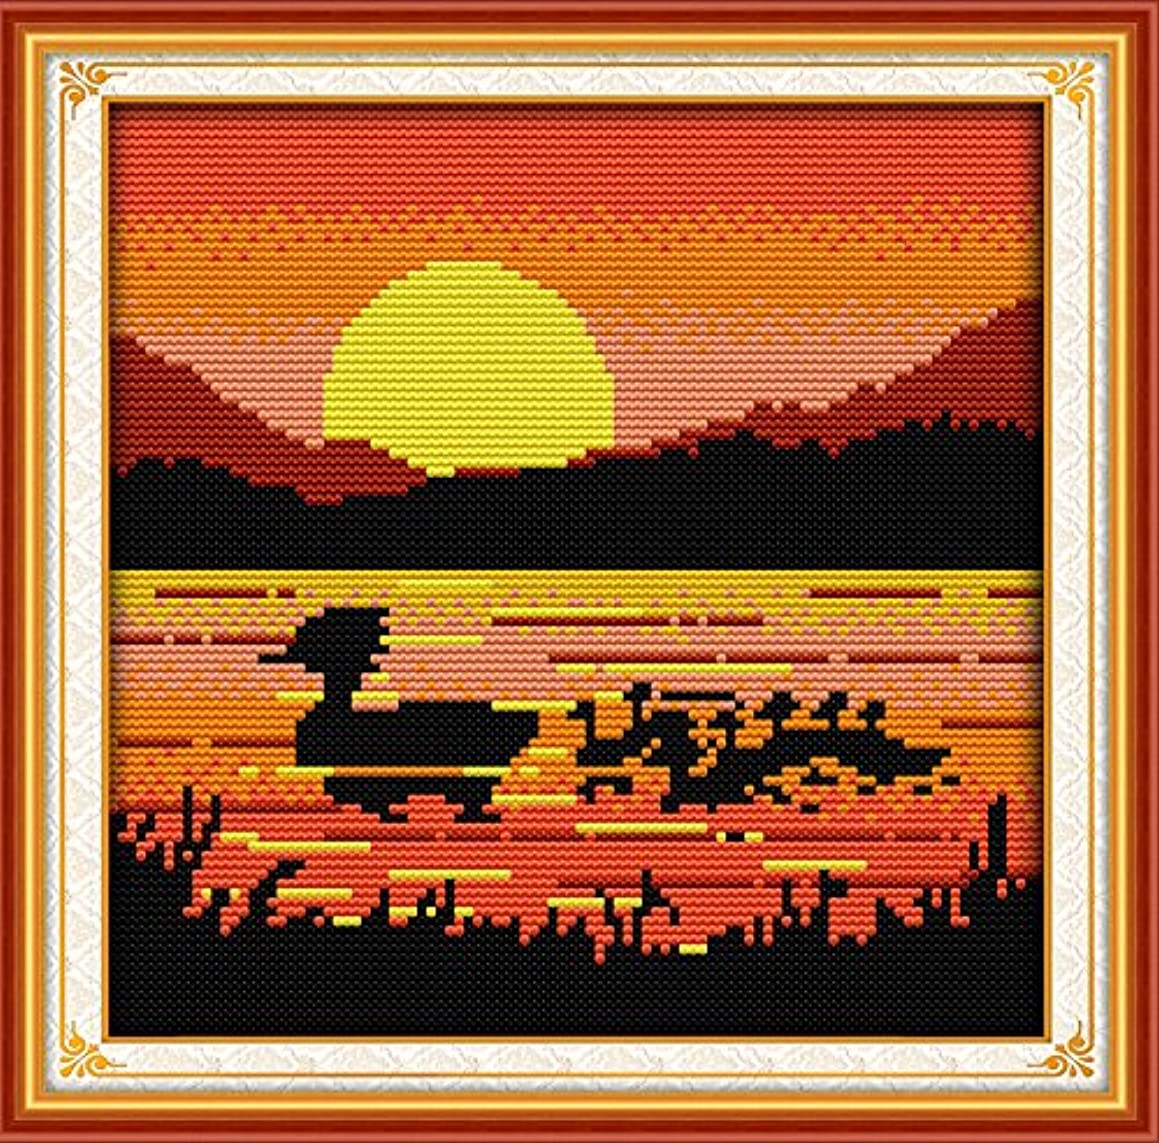 Joy Sunday Cross Stitch Kit 14CT Stamped Embroidery Kits Precise Printed African Style Needlework - The Sunset Ducks